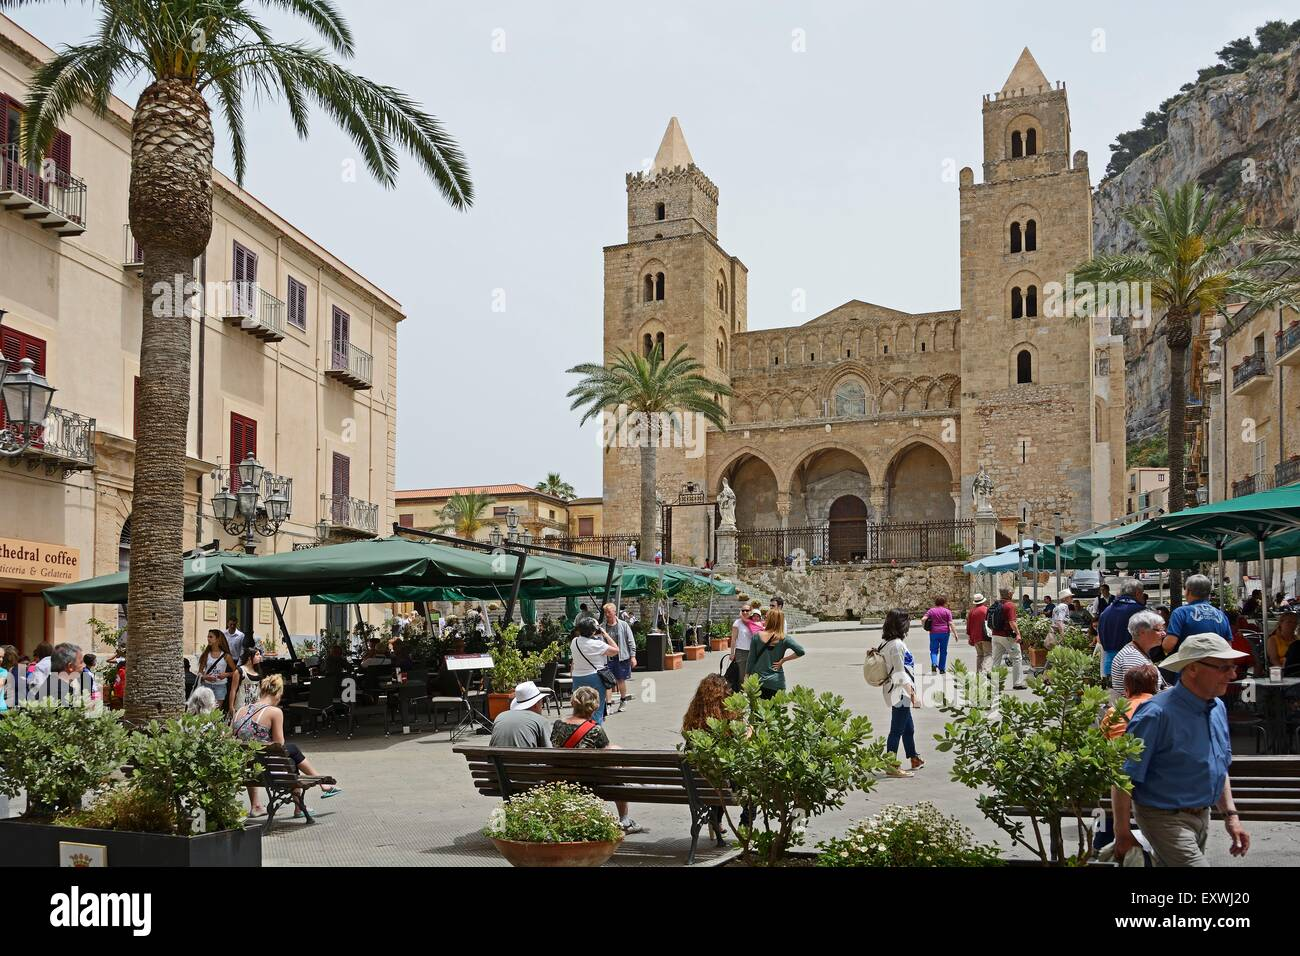 San Salvatore cathedral, Cefalu, Sicily, Italy, Europe - Stock Image